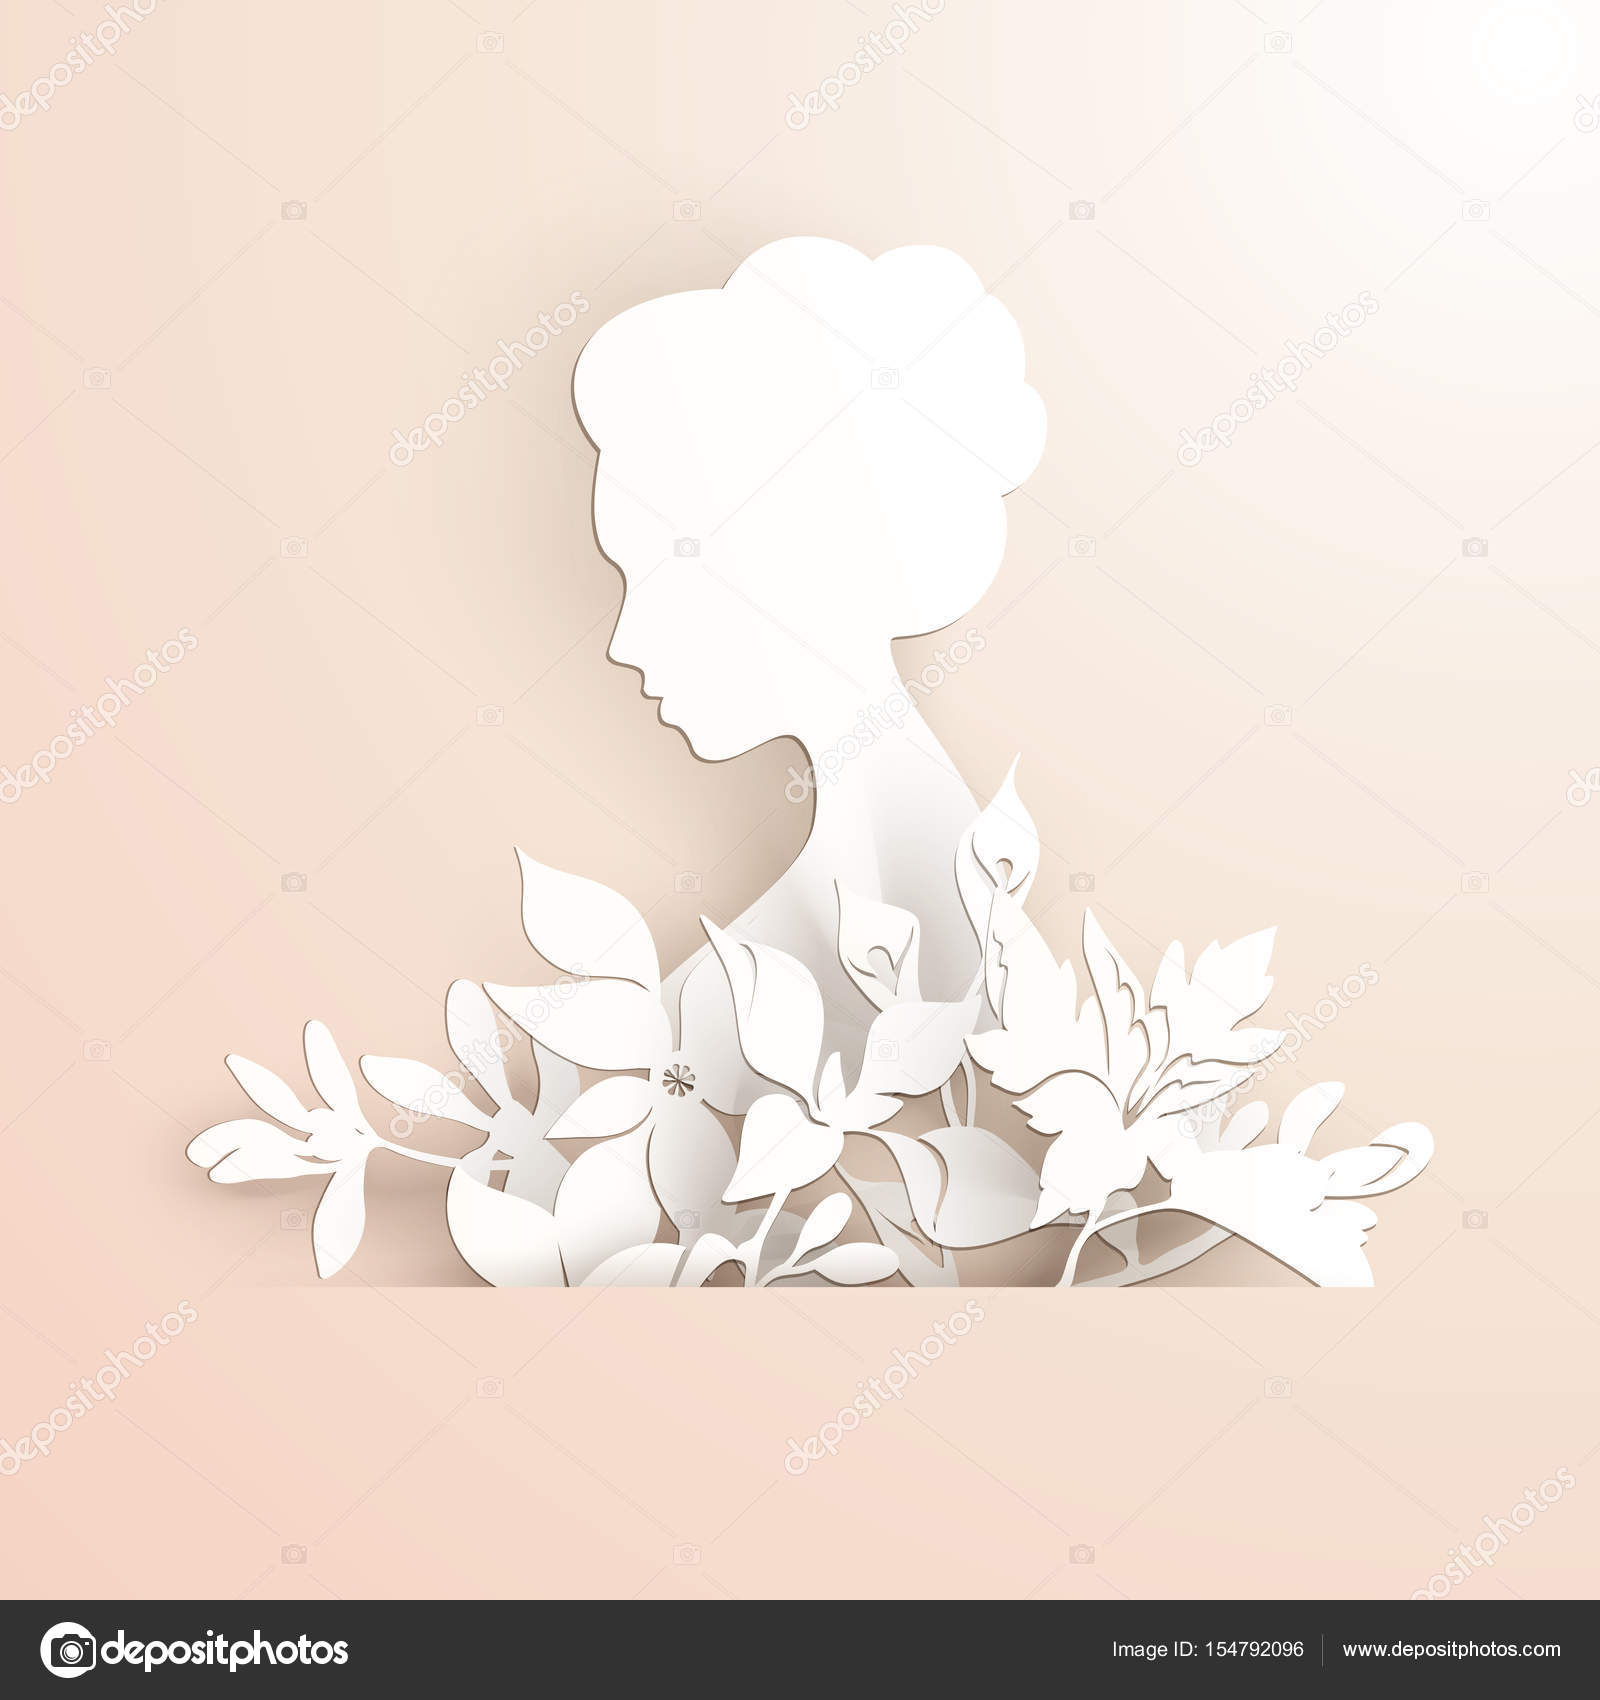 Royalty free stock illustration of lady face template glyph icon.